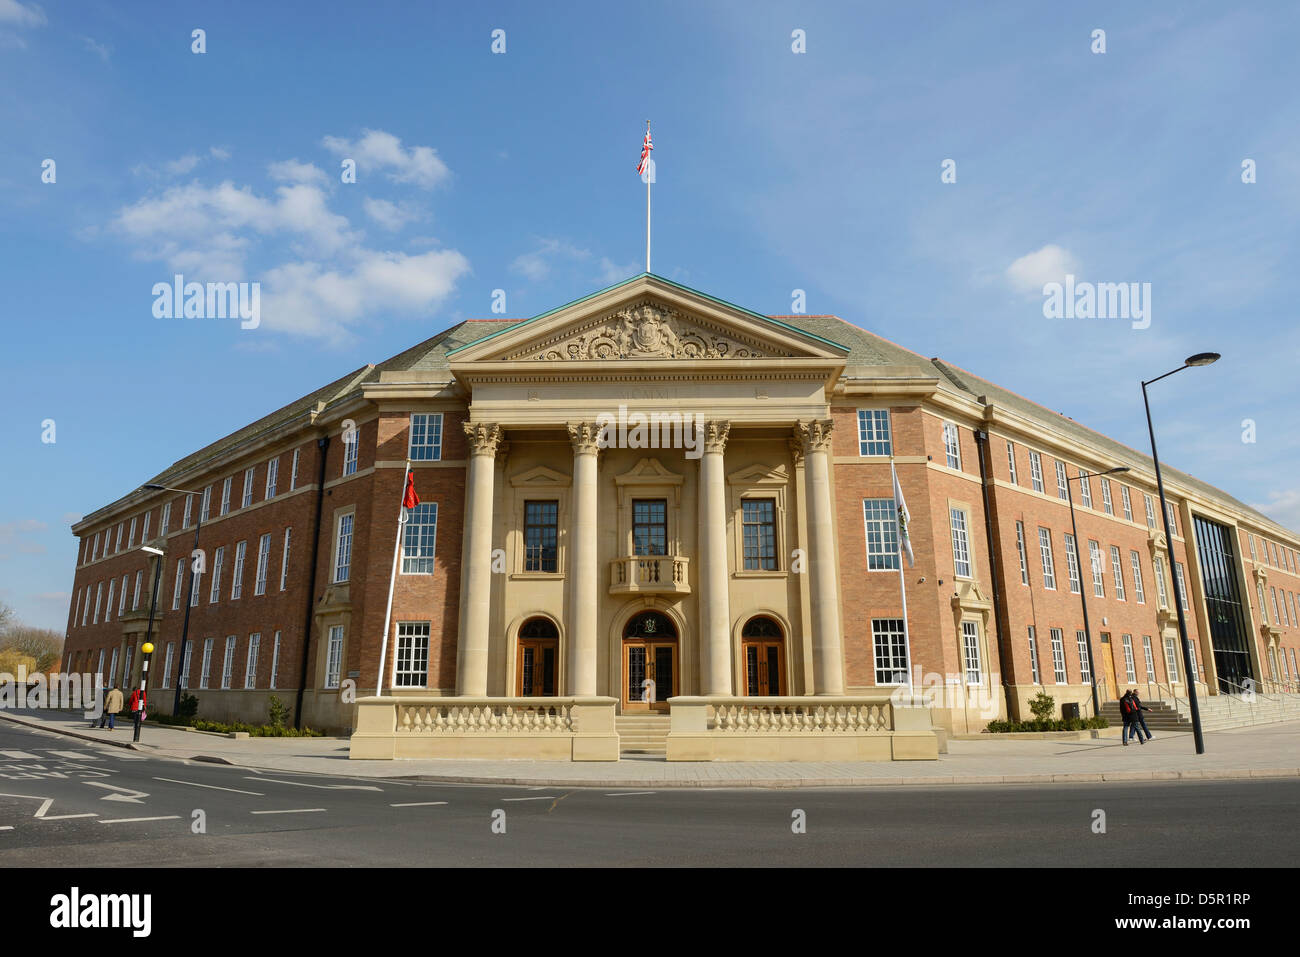 derby-city-council-offices-D5R1RP.jpg